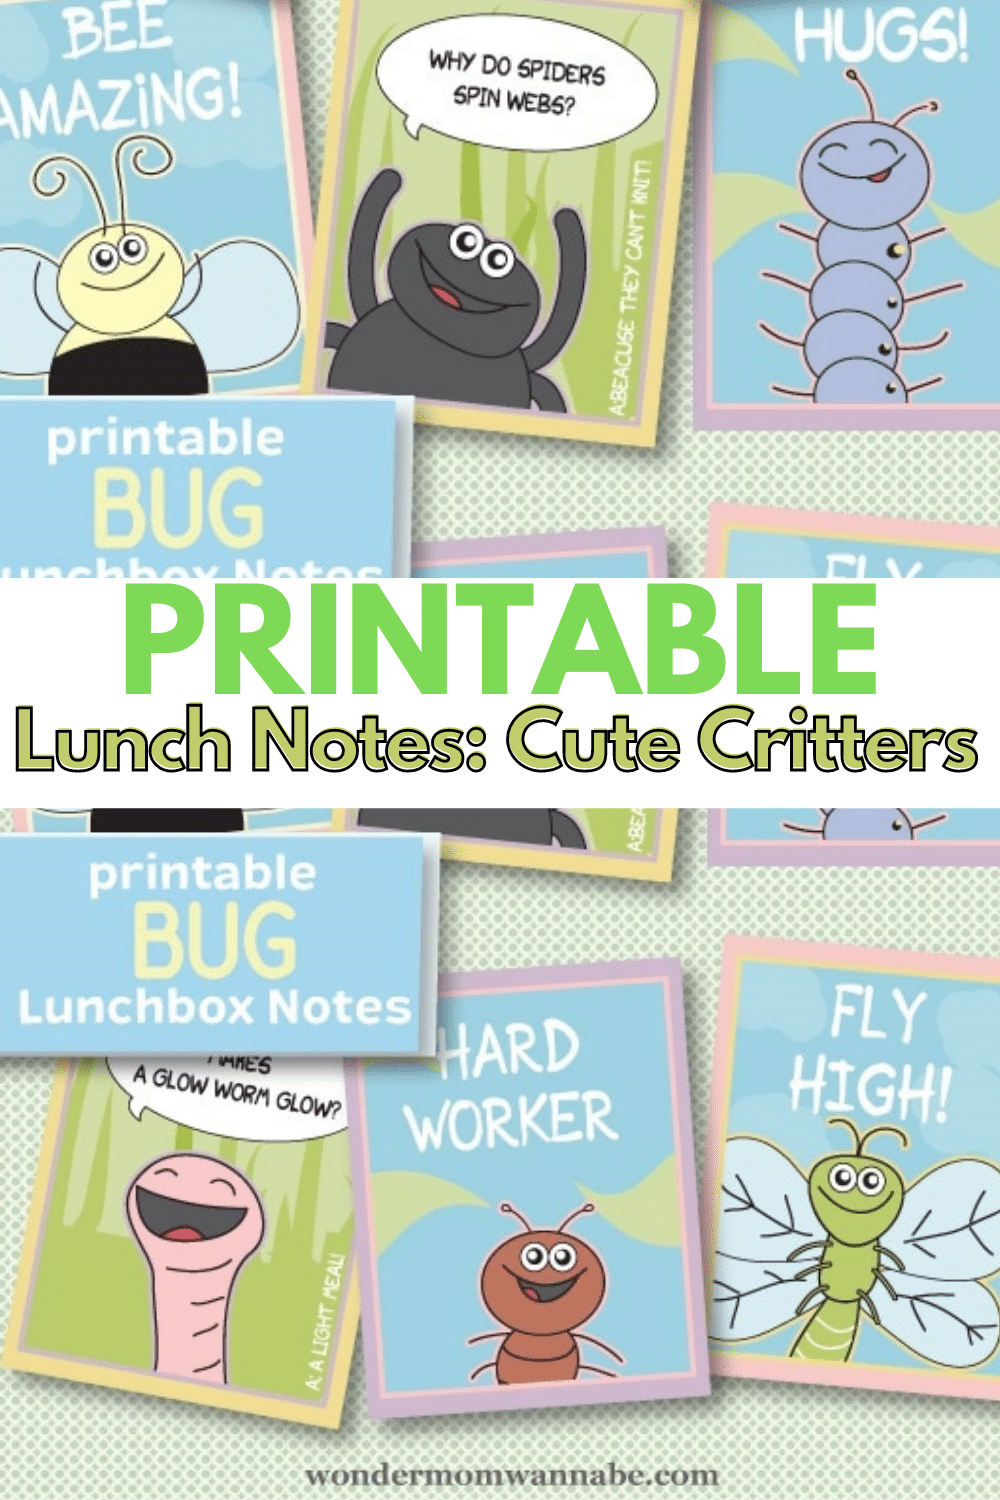 These printable lunch notes are super cute and an easy way to brighten your child's day! #printables #lunchnotes #parenting via @wondermomwannab